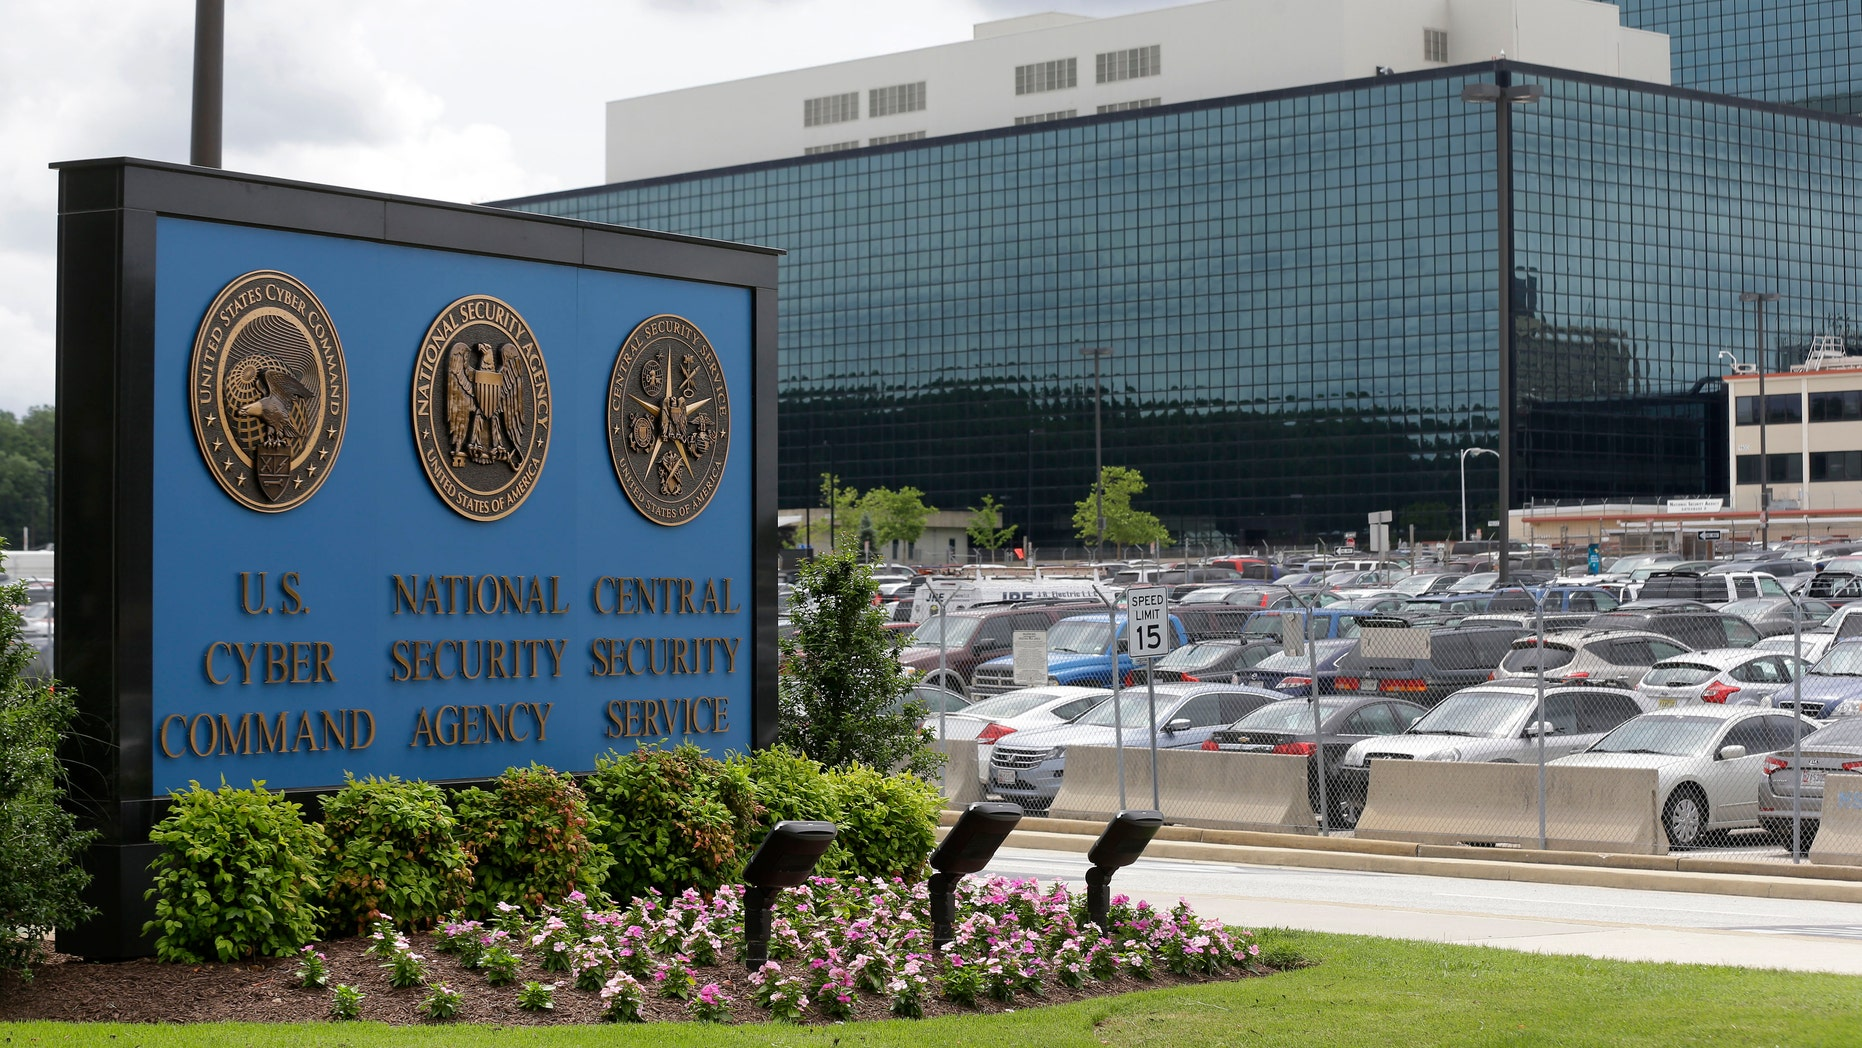 FILE - This June 6, 2013 file photo shows a sign outside the National Security Agency (NSA) campus in Fort Meade, Md. For months, two review panels given nearly similar assignments by President Barack Obama have been studying how the White House should change or limit the National Security Agency's surveillance programs. They have functioned separately, with different experts and private and public hearings. Their mandates, however, were almost identical.  (AP Photo/Patrick Semansky, File)